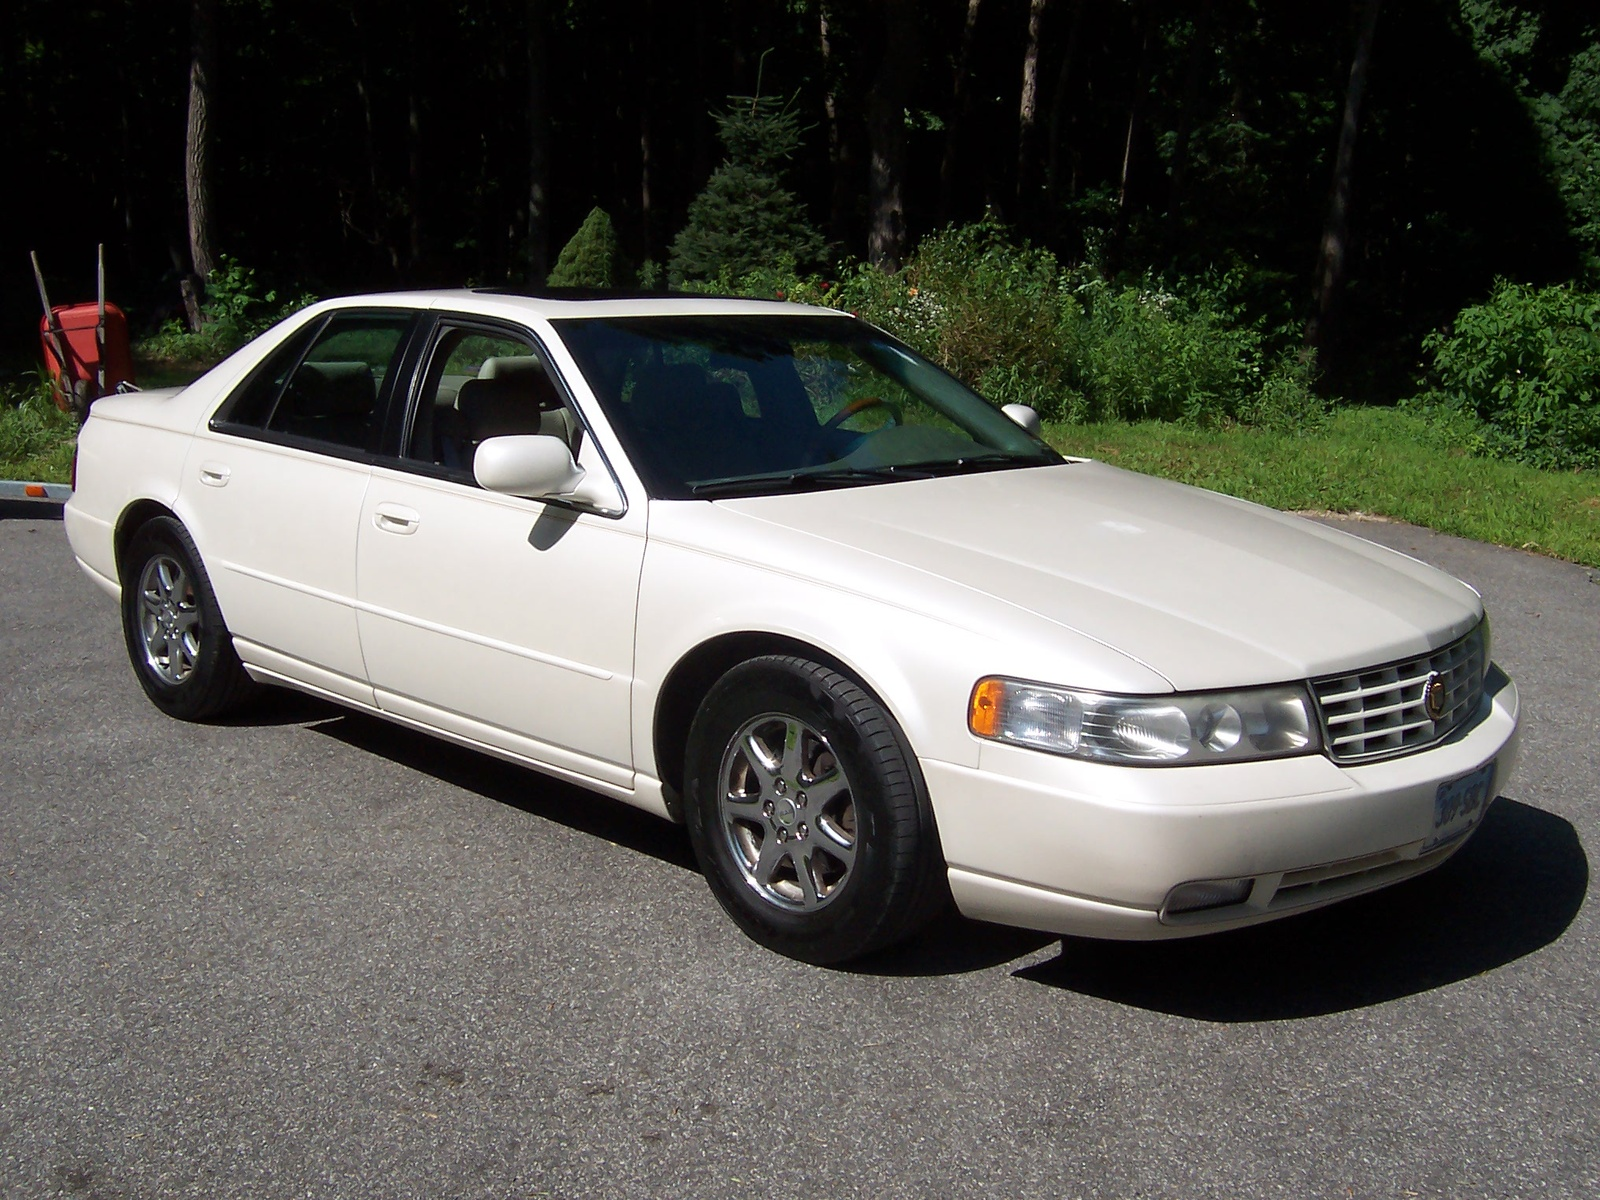 Cadillac Seville 2002 for Sale